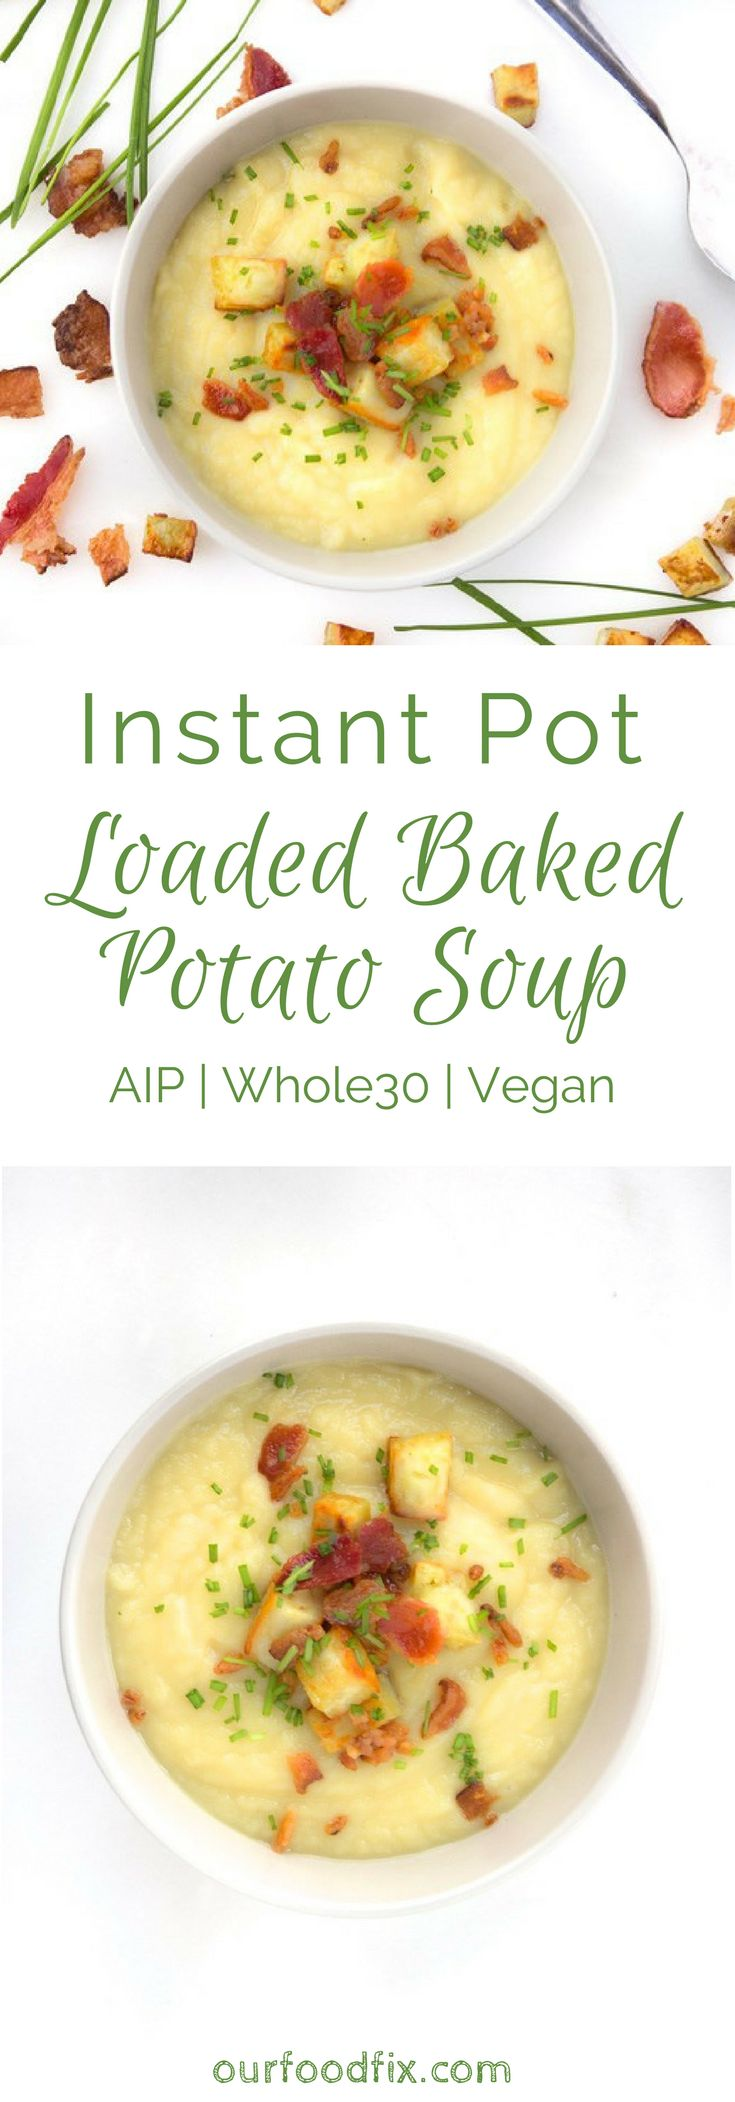 A quick, easy, healthy take on the comfort food classic. Free of allergens, and options to customize your toppings, you are only 30 minutes from a hearty and satisfying one pot meal. Instant pot recipes | AIP recipes | Autoimmune paleo recipes | One pot meals | 30 minute meals | Paleo recipes | Gluten free recipes | Egg free recipes | Nut free recipes | Vegan recipes | Allergy friendly recipes | Soup recipes